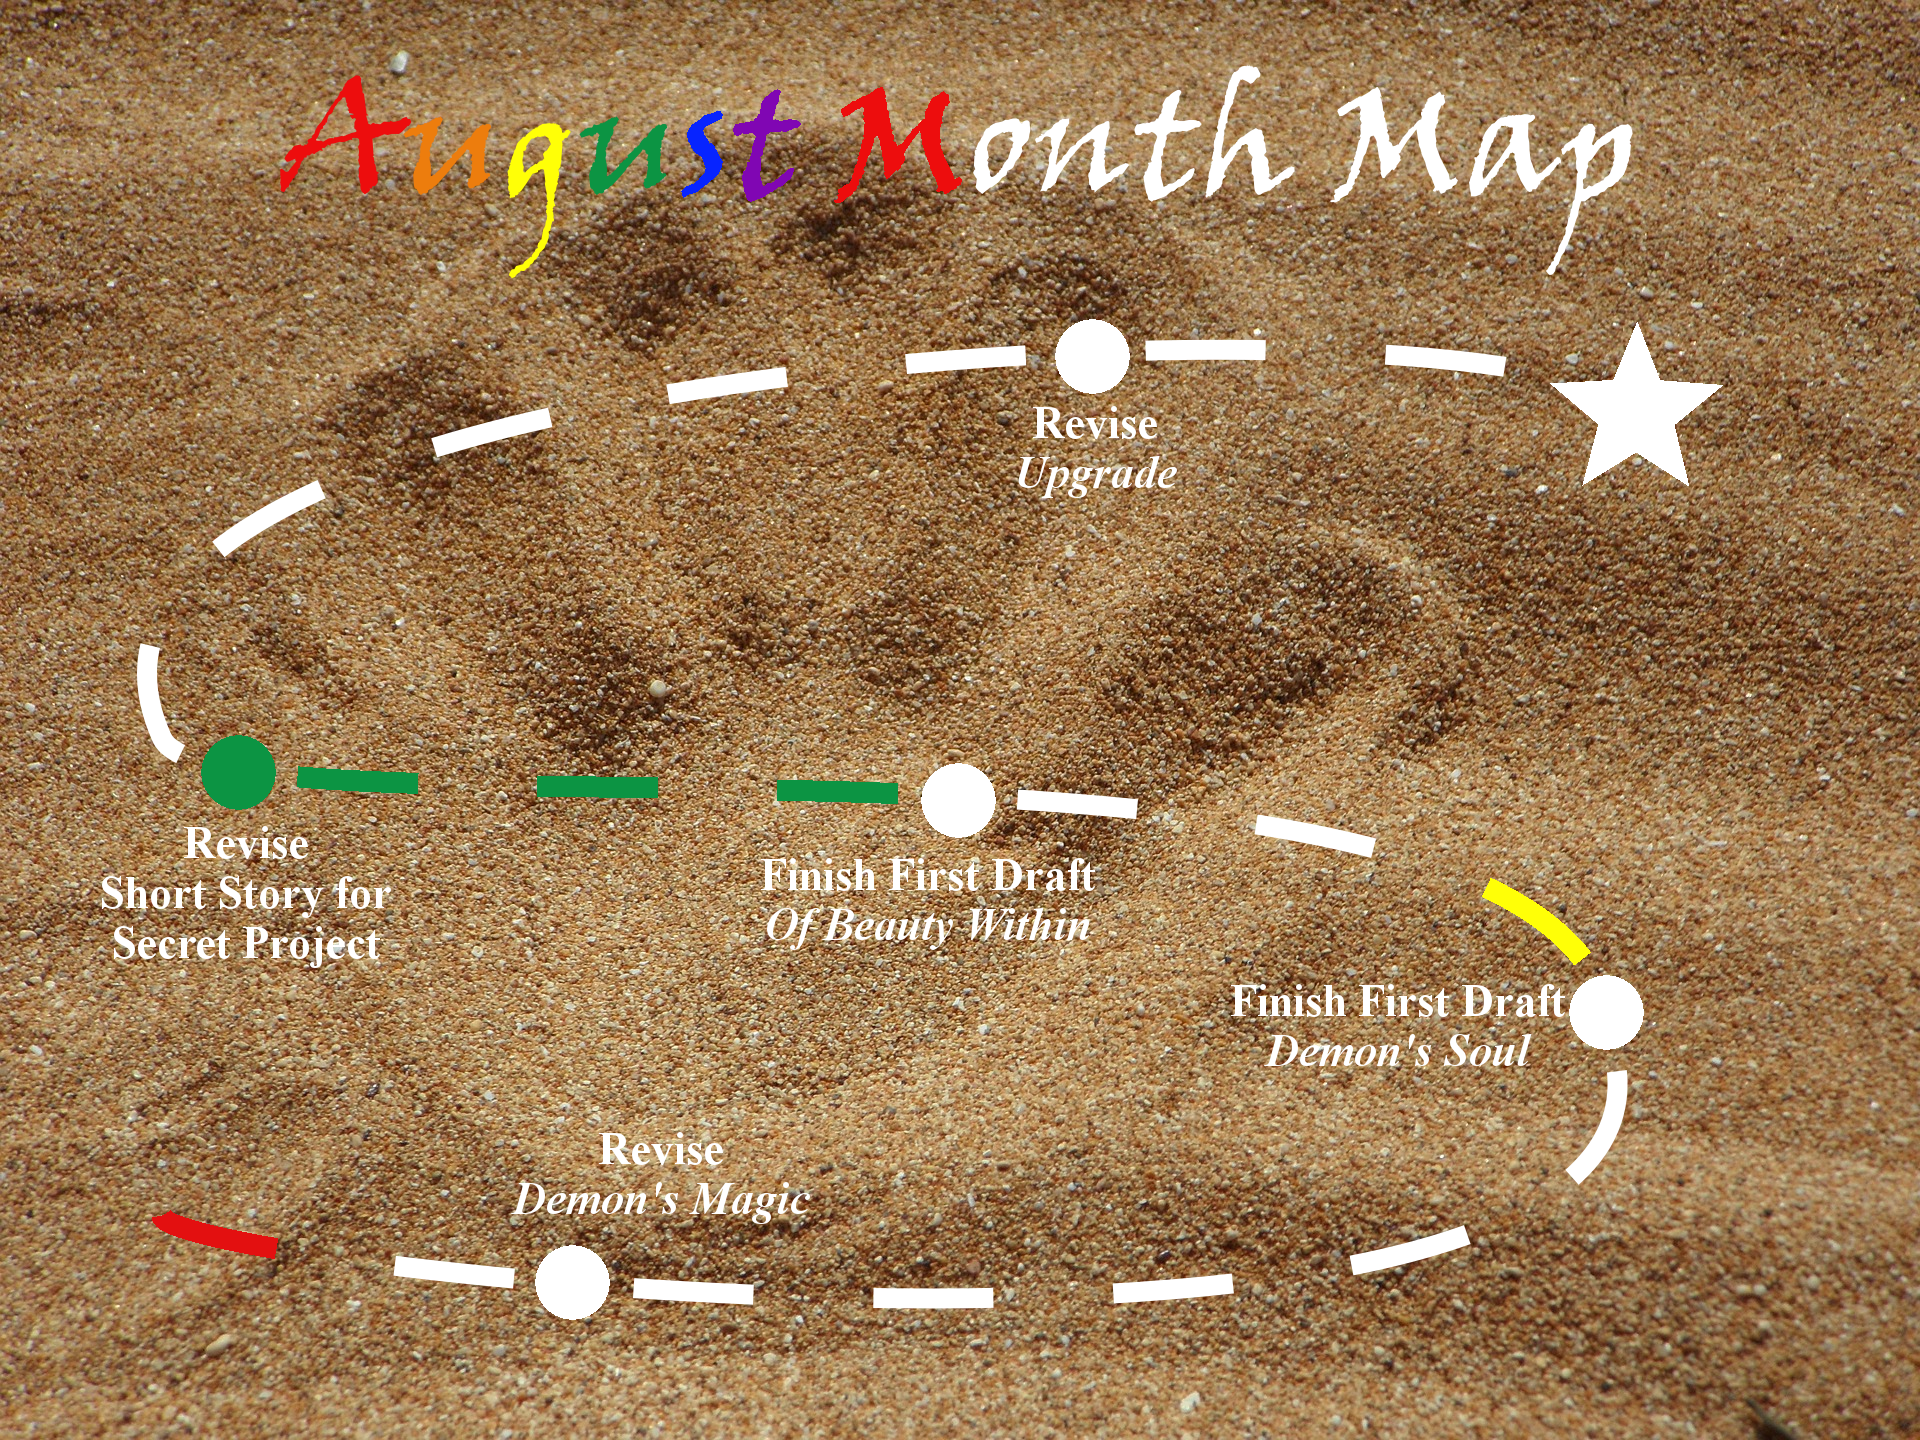 Ensign's Log, Entry 29: August Month Map–Week 2